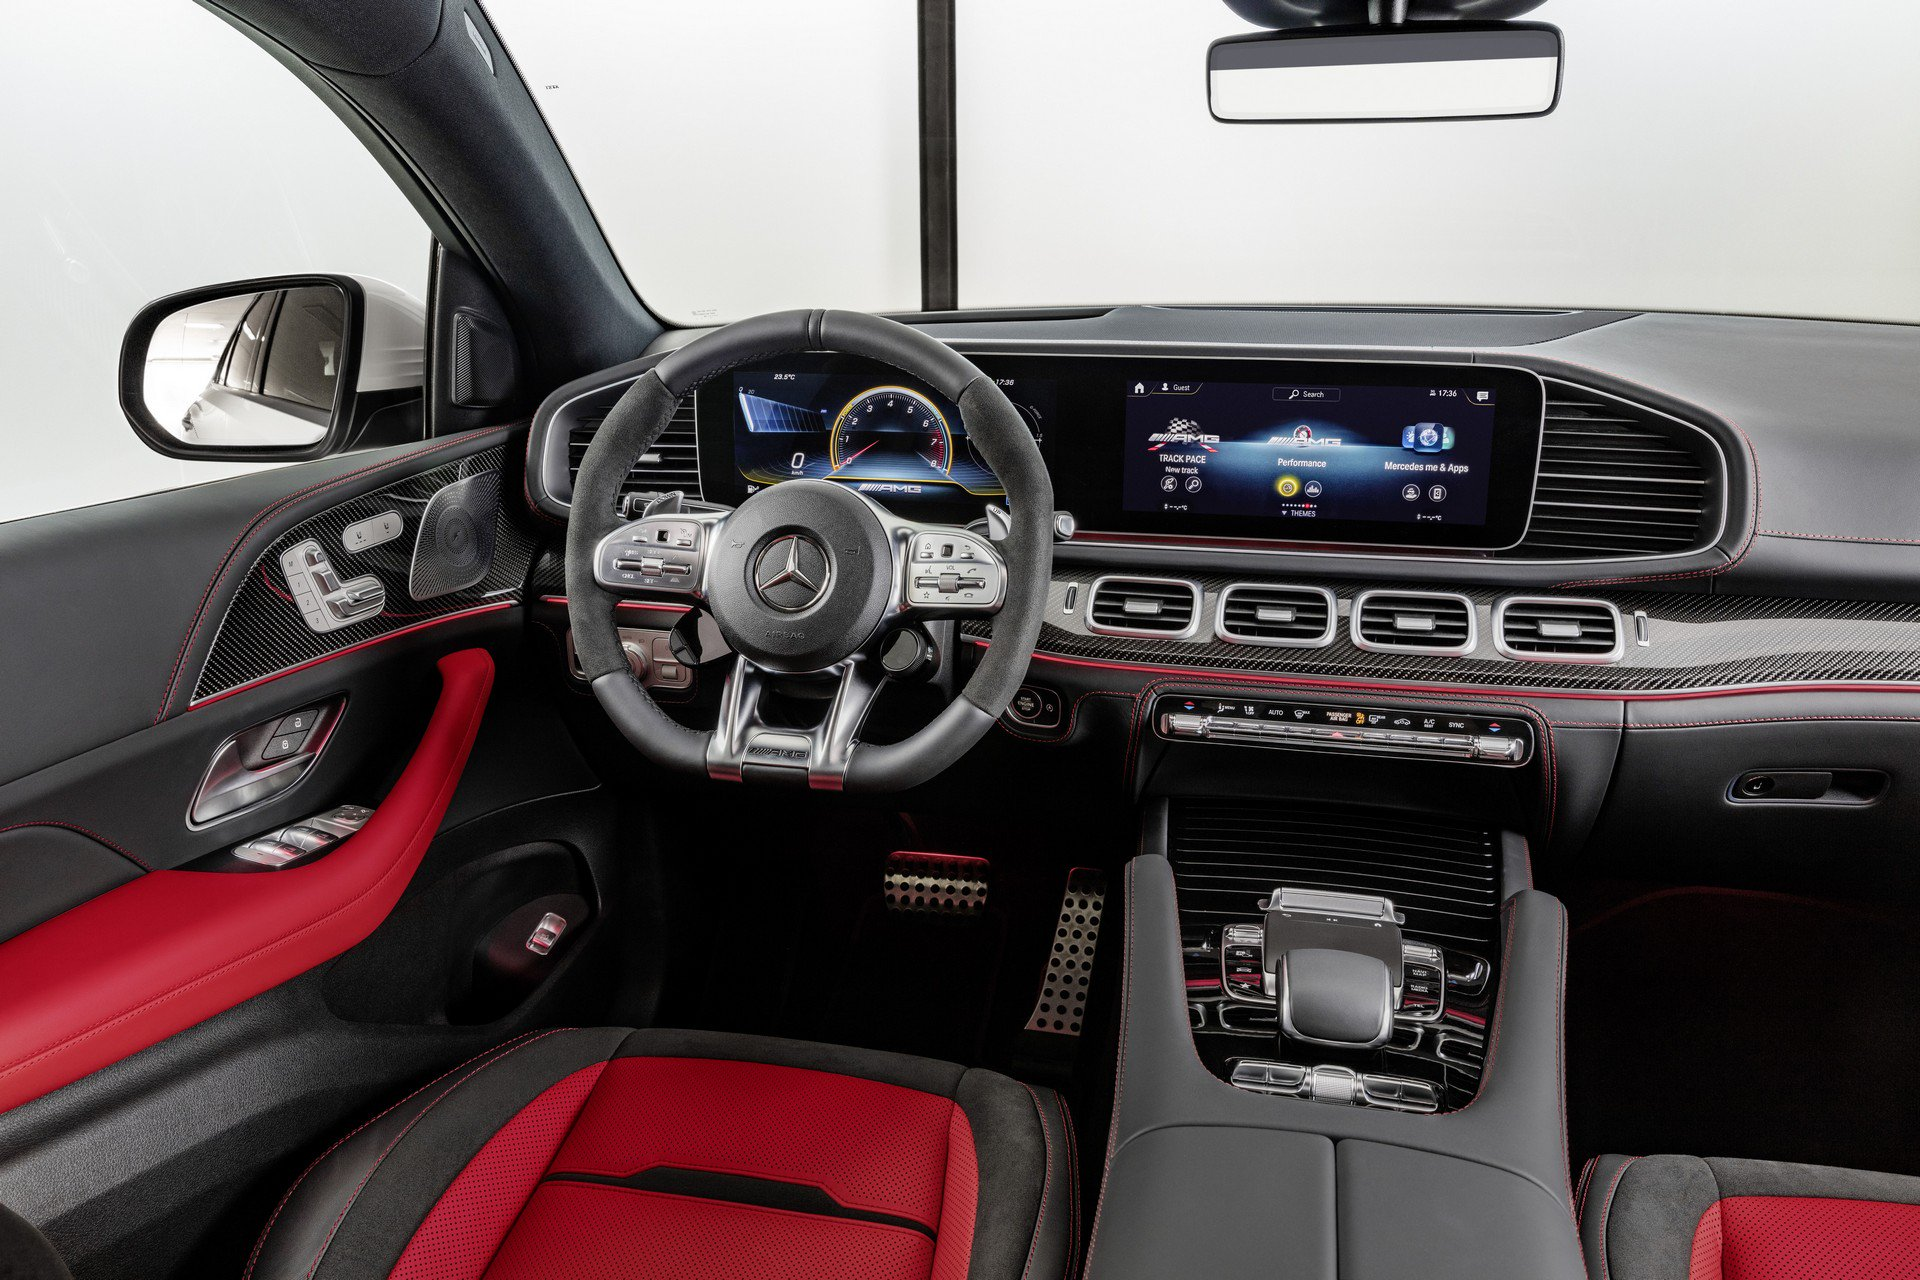 11f06d89-2020-mercedes-gle-coupe-58